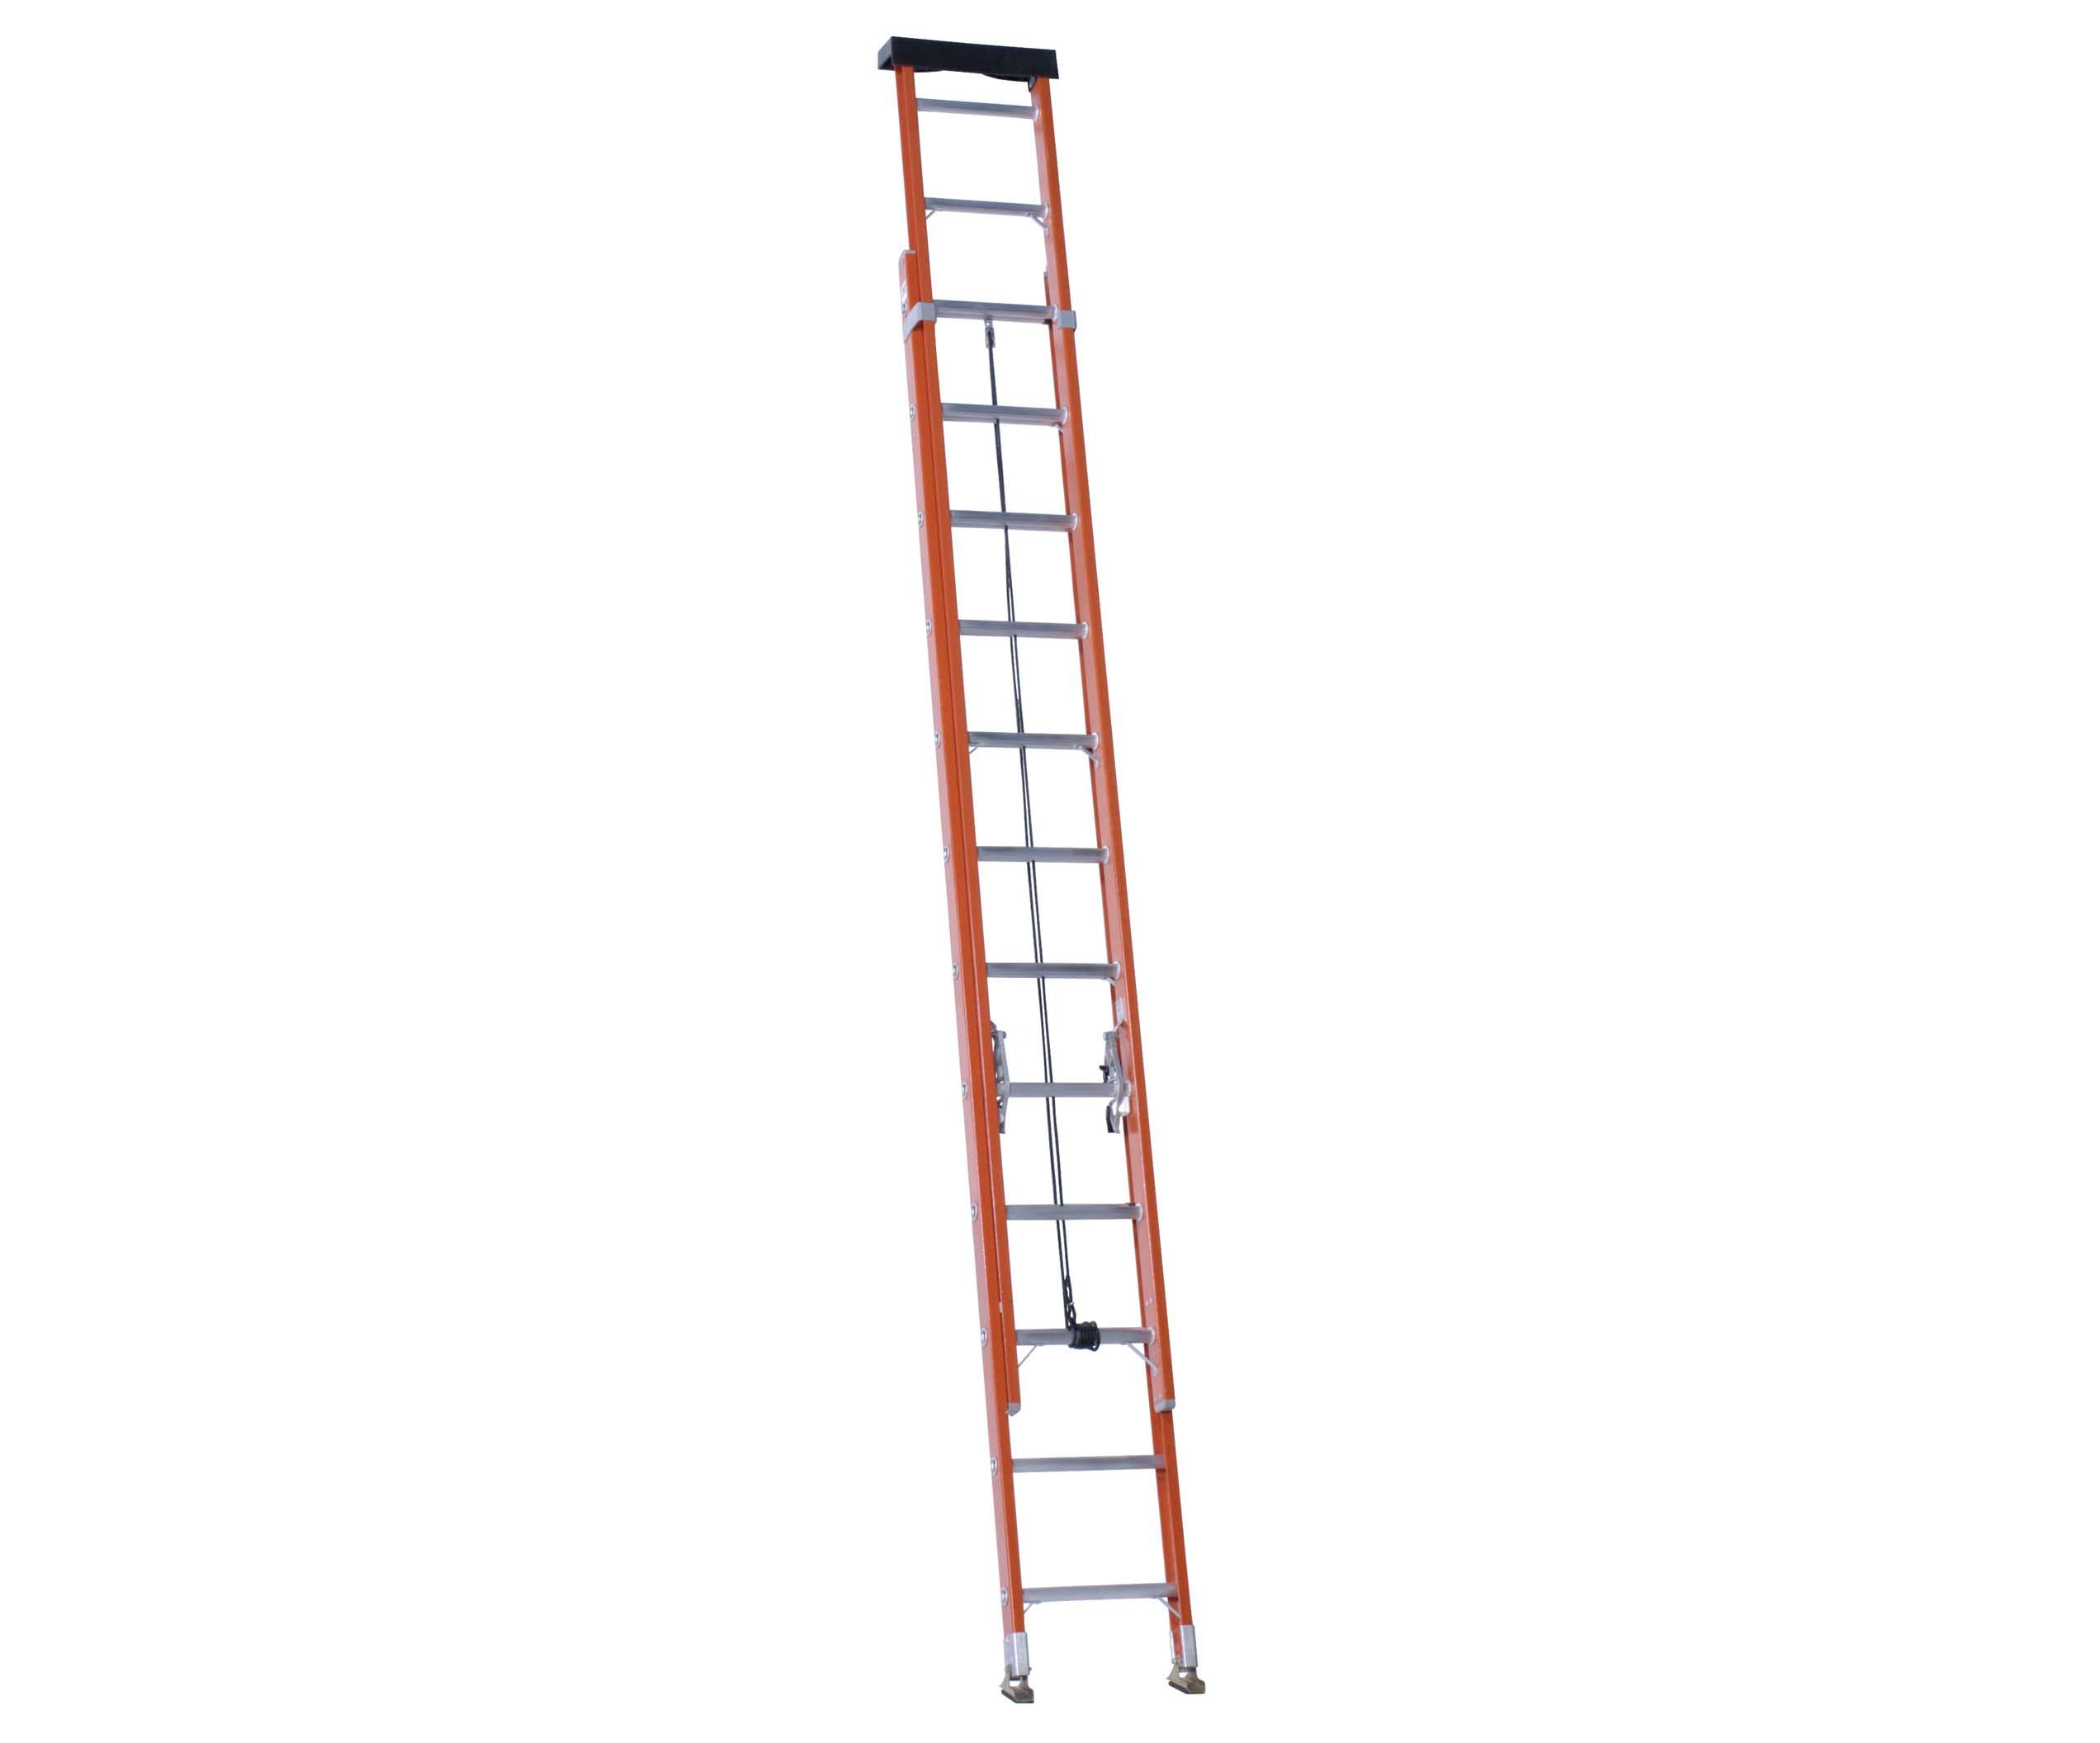 Vestil Fiberglass Extension Ladders with Aluminum Rungs